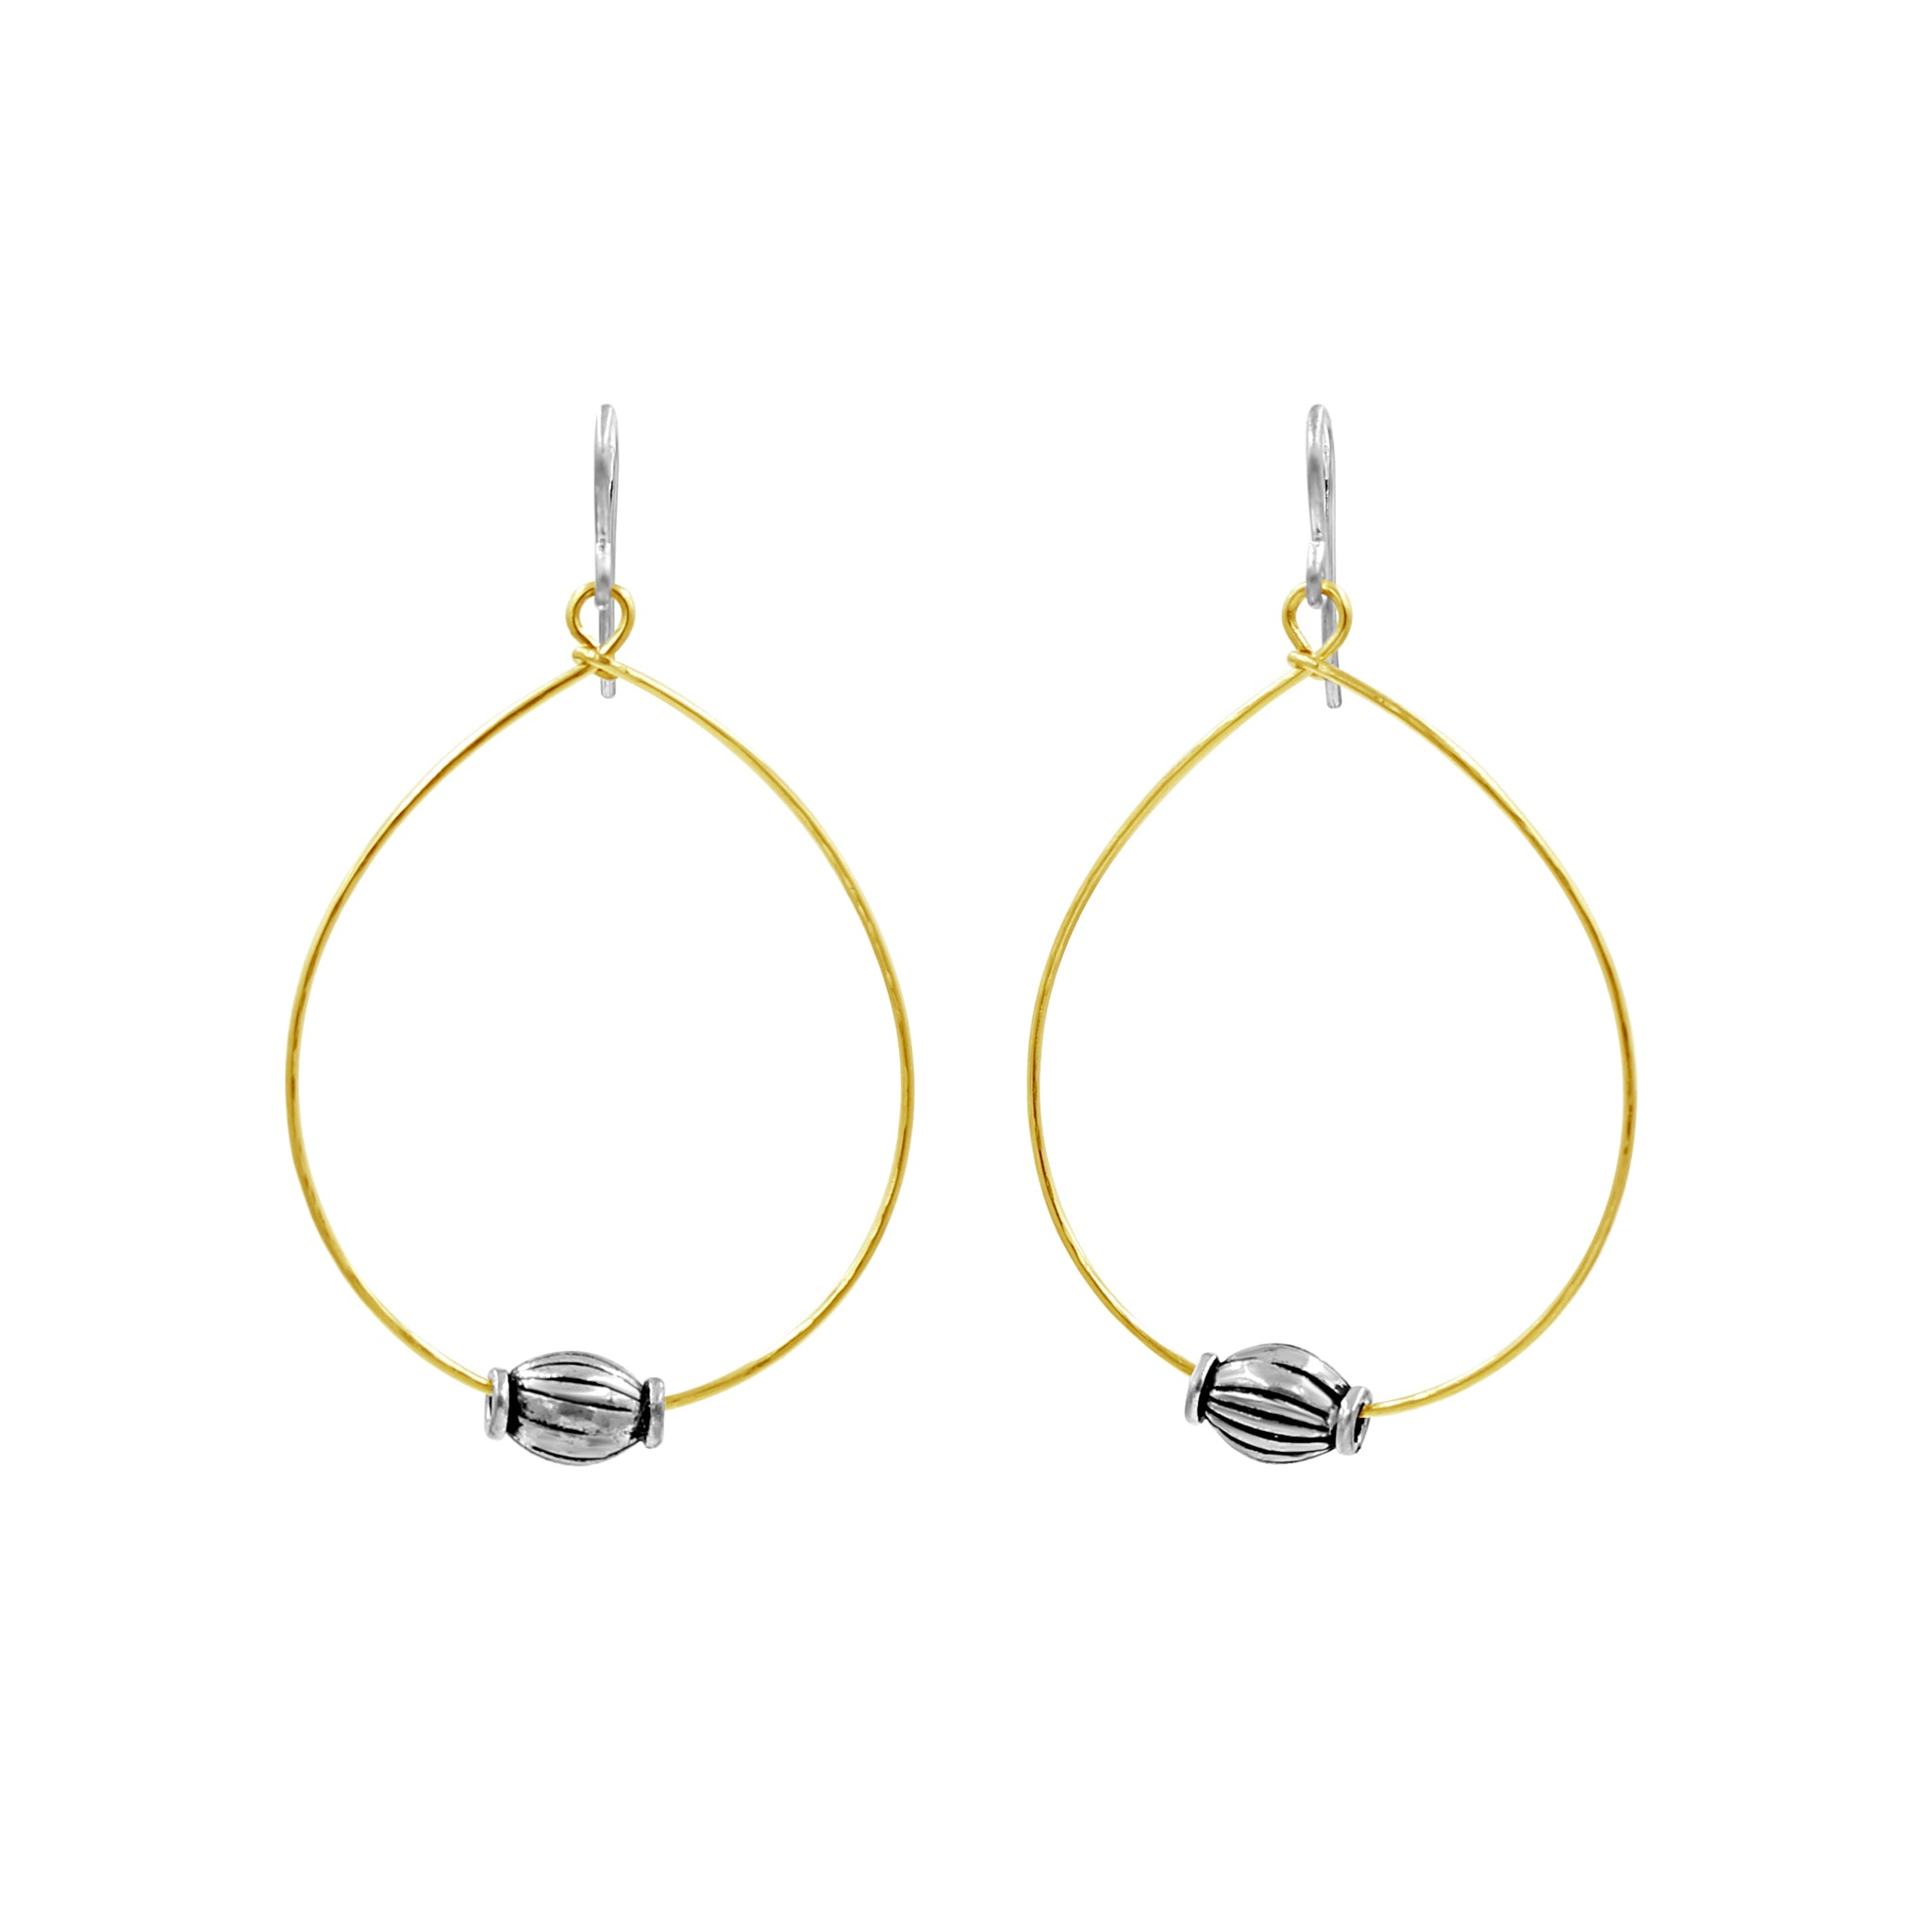 Silver & Gold Hoop Earrings - Sati Gems Hawaii Healing Crystal Gemstone Jewelry